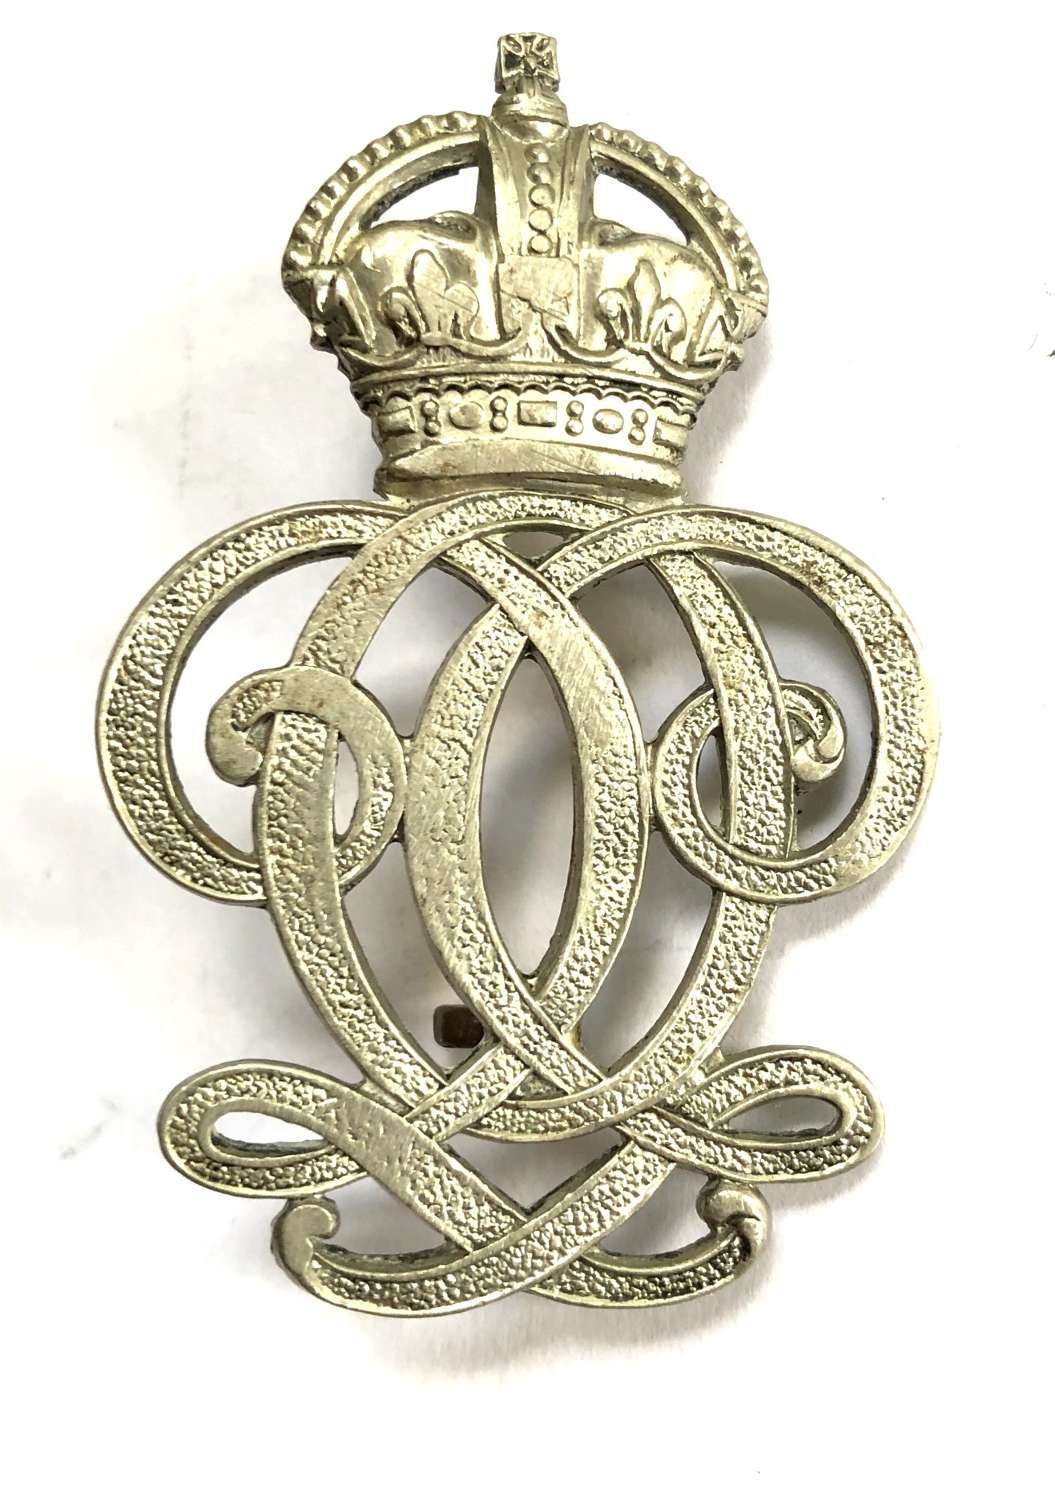 7th Queen's Own Hussars NCO's arm badge